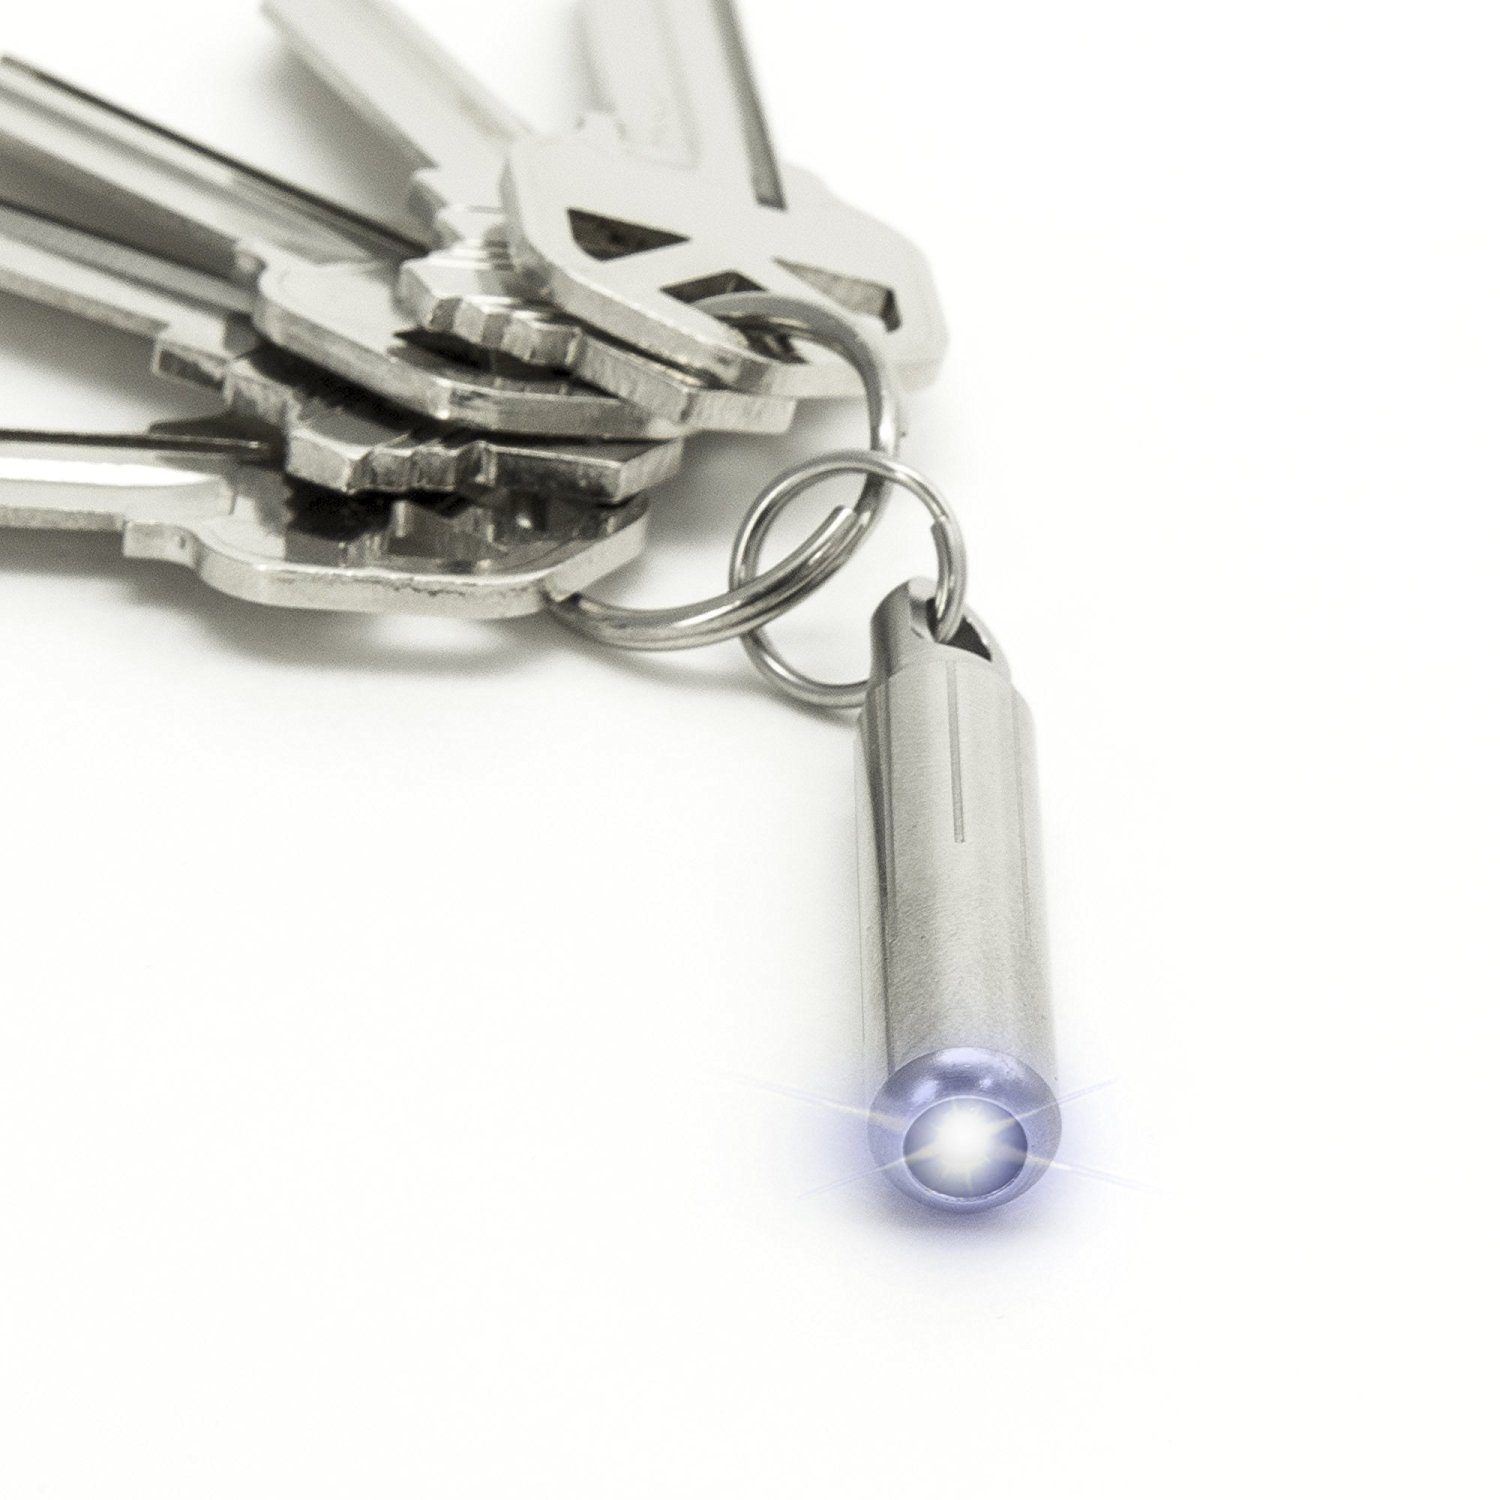 Nano Torch By KeySmart | World's Smallest and Brightest Flashlight for Your Keychain CurvGroup